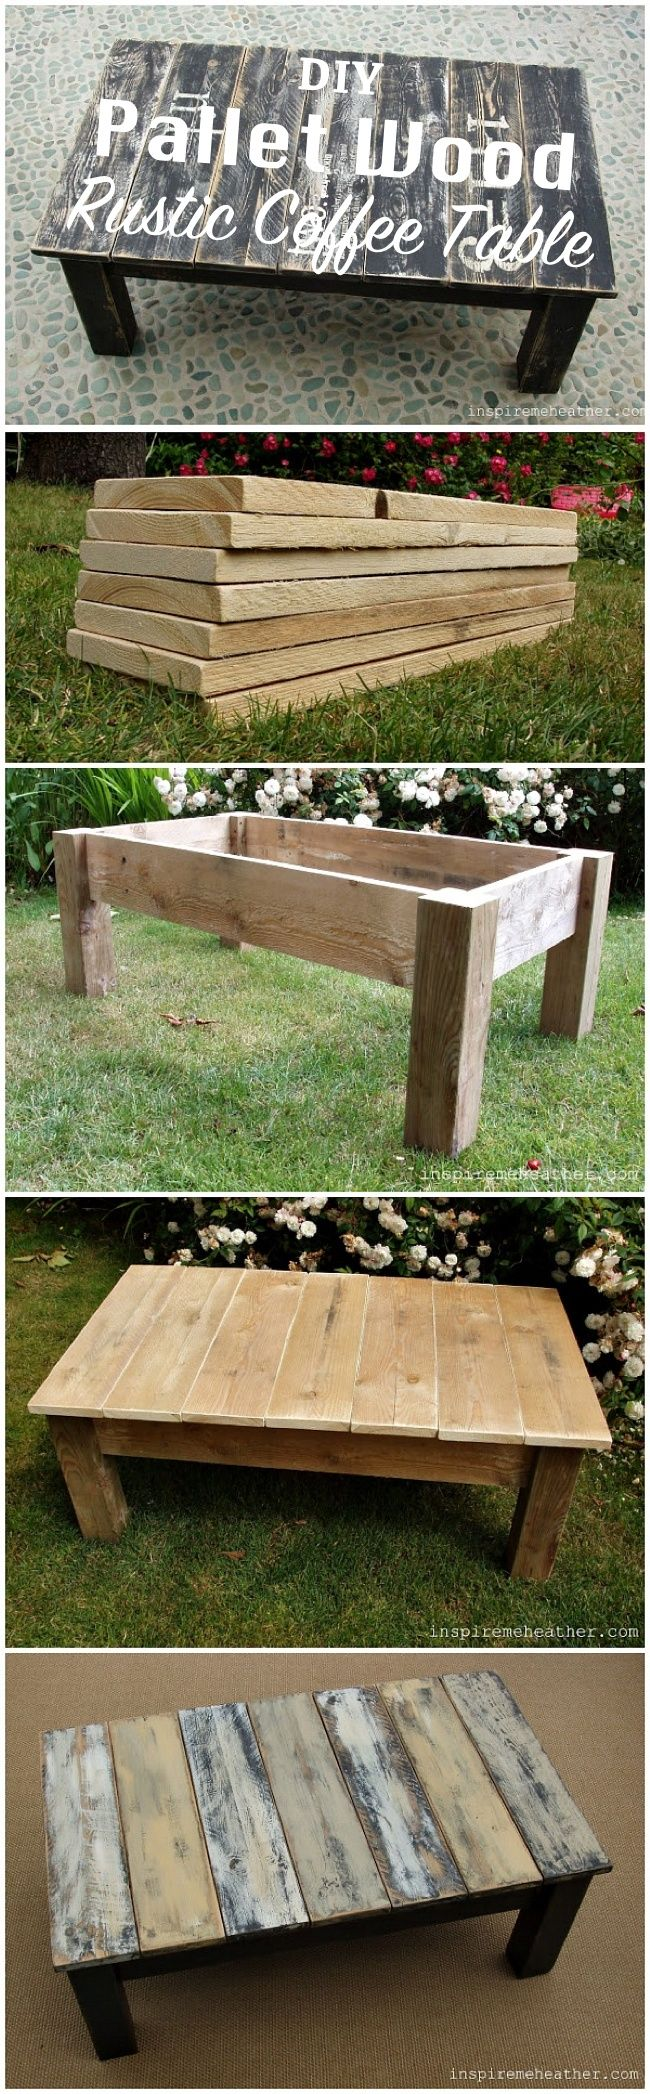 DIY Pallet Wood Rustic Coffee Table / Go for a rustic style  for your next piece of furniture. You can reuse pallet wood to get great results.